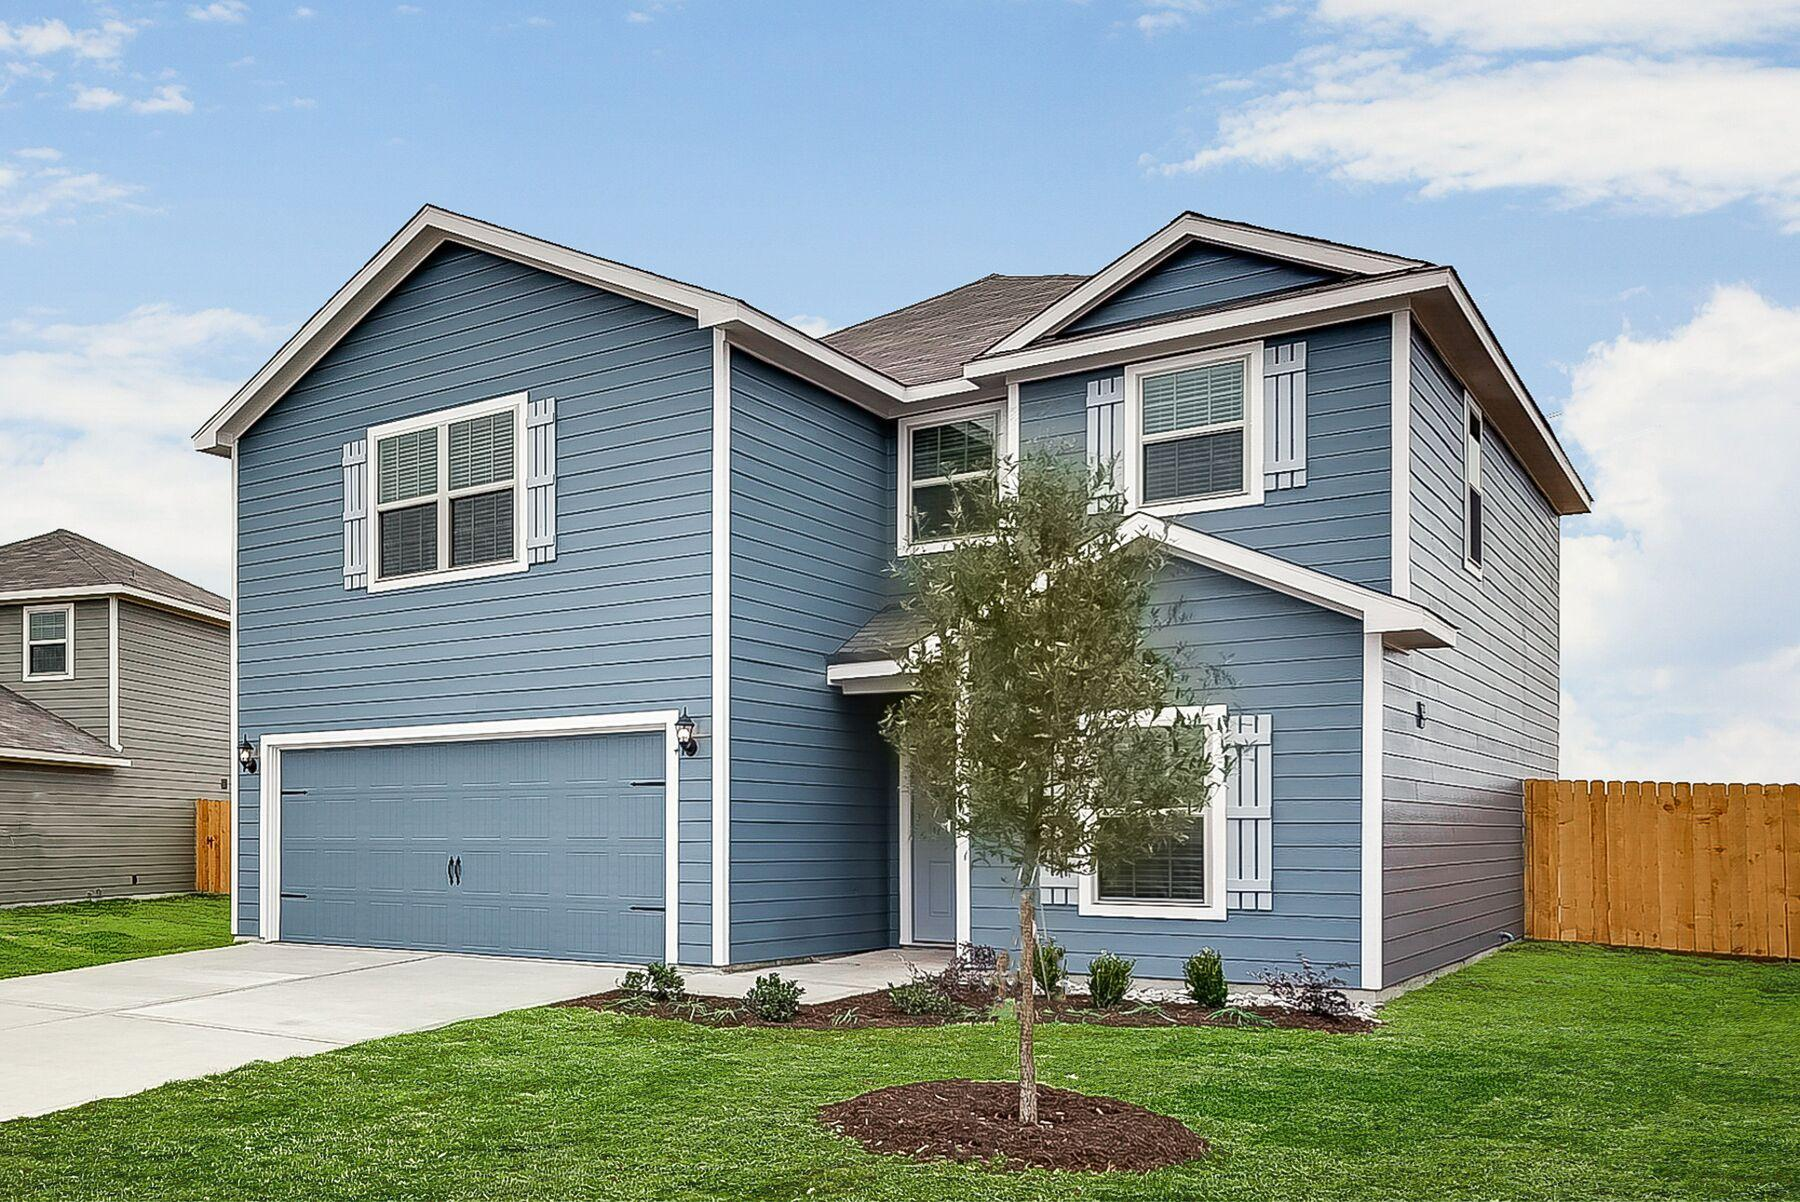 LGI Homes at Patriot Estate:The spacious Dirftwood plan offers 5 bedrooms and 2.5 baths!